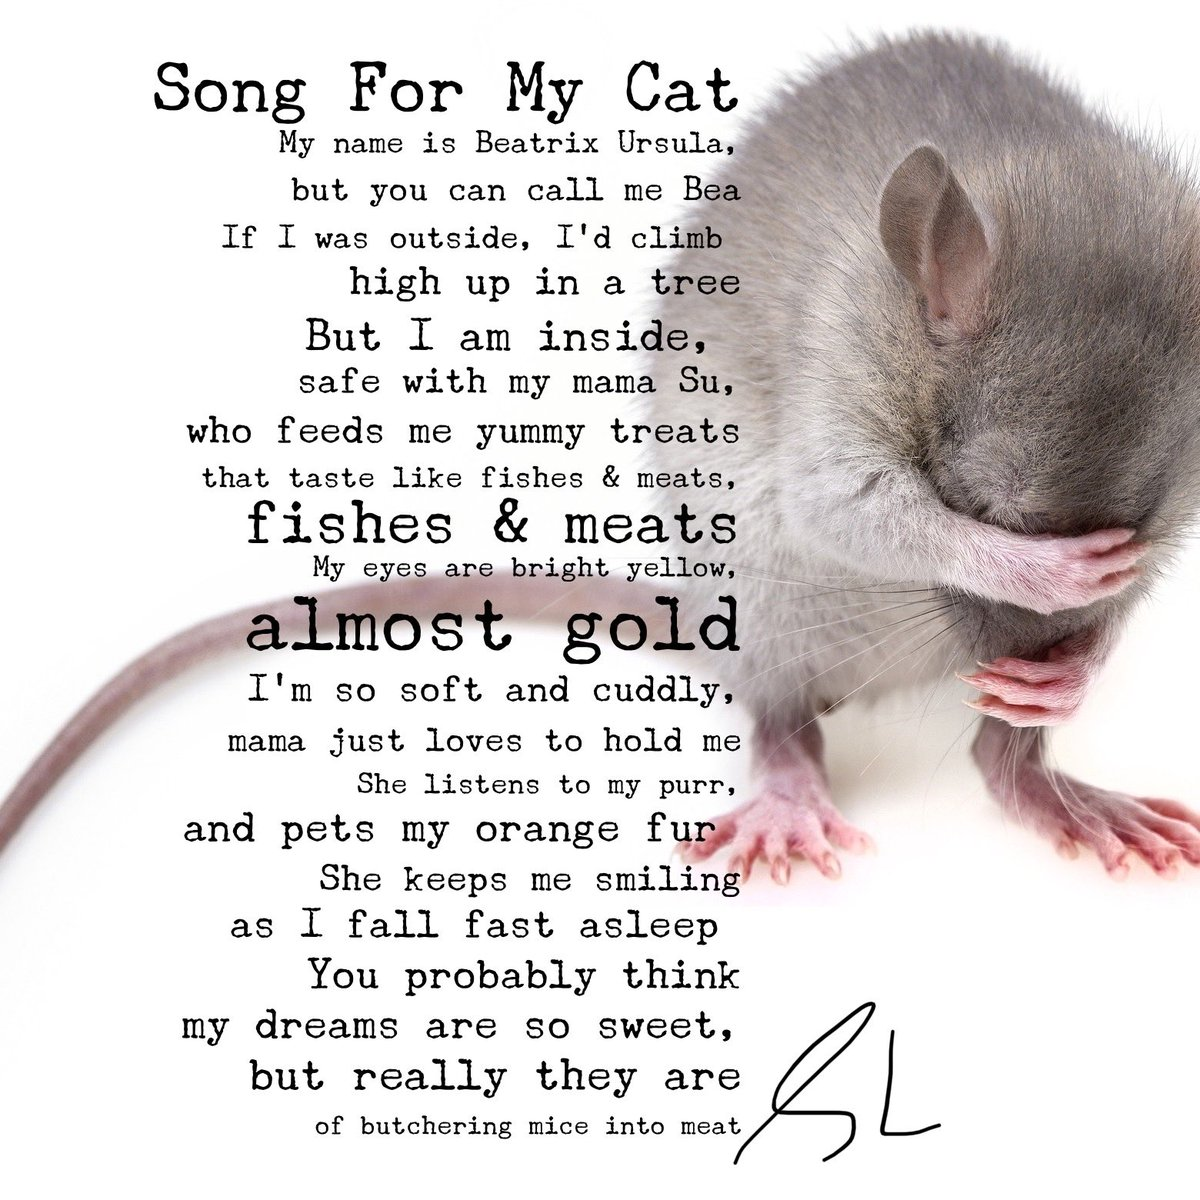 #poetry #writingcommunity #author #poems #song #humour #cats